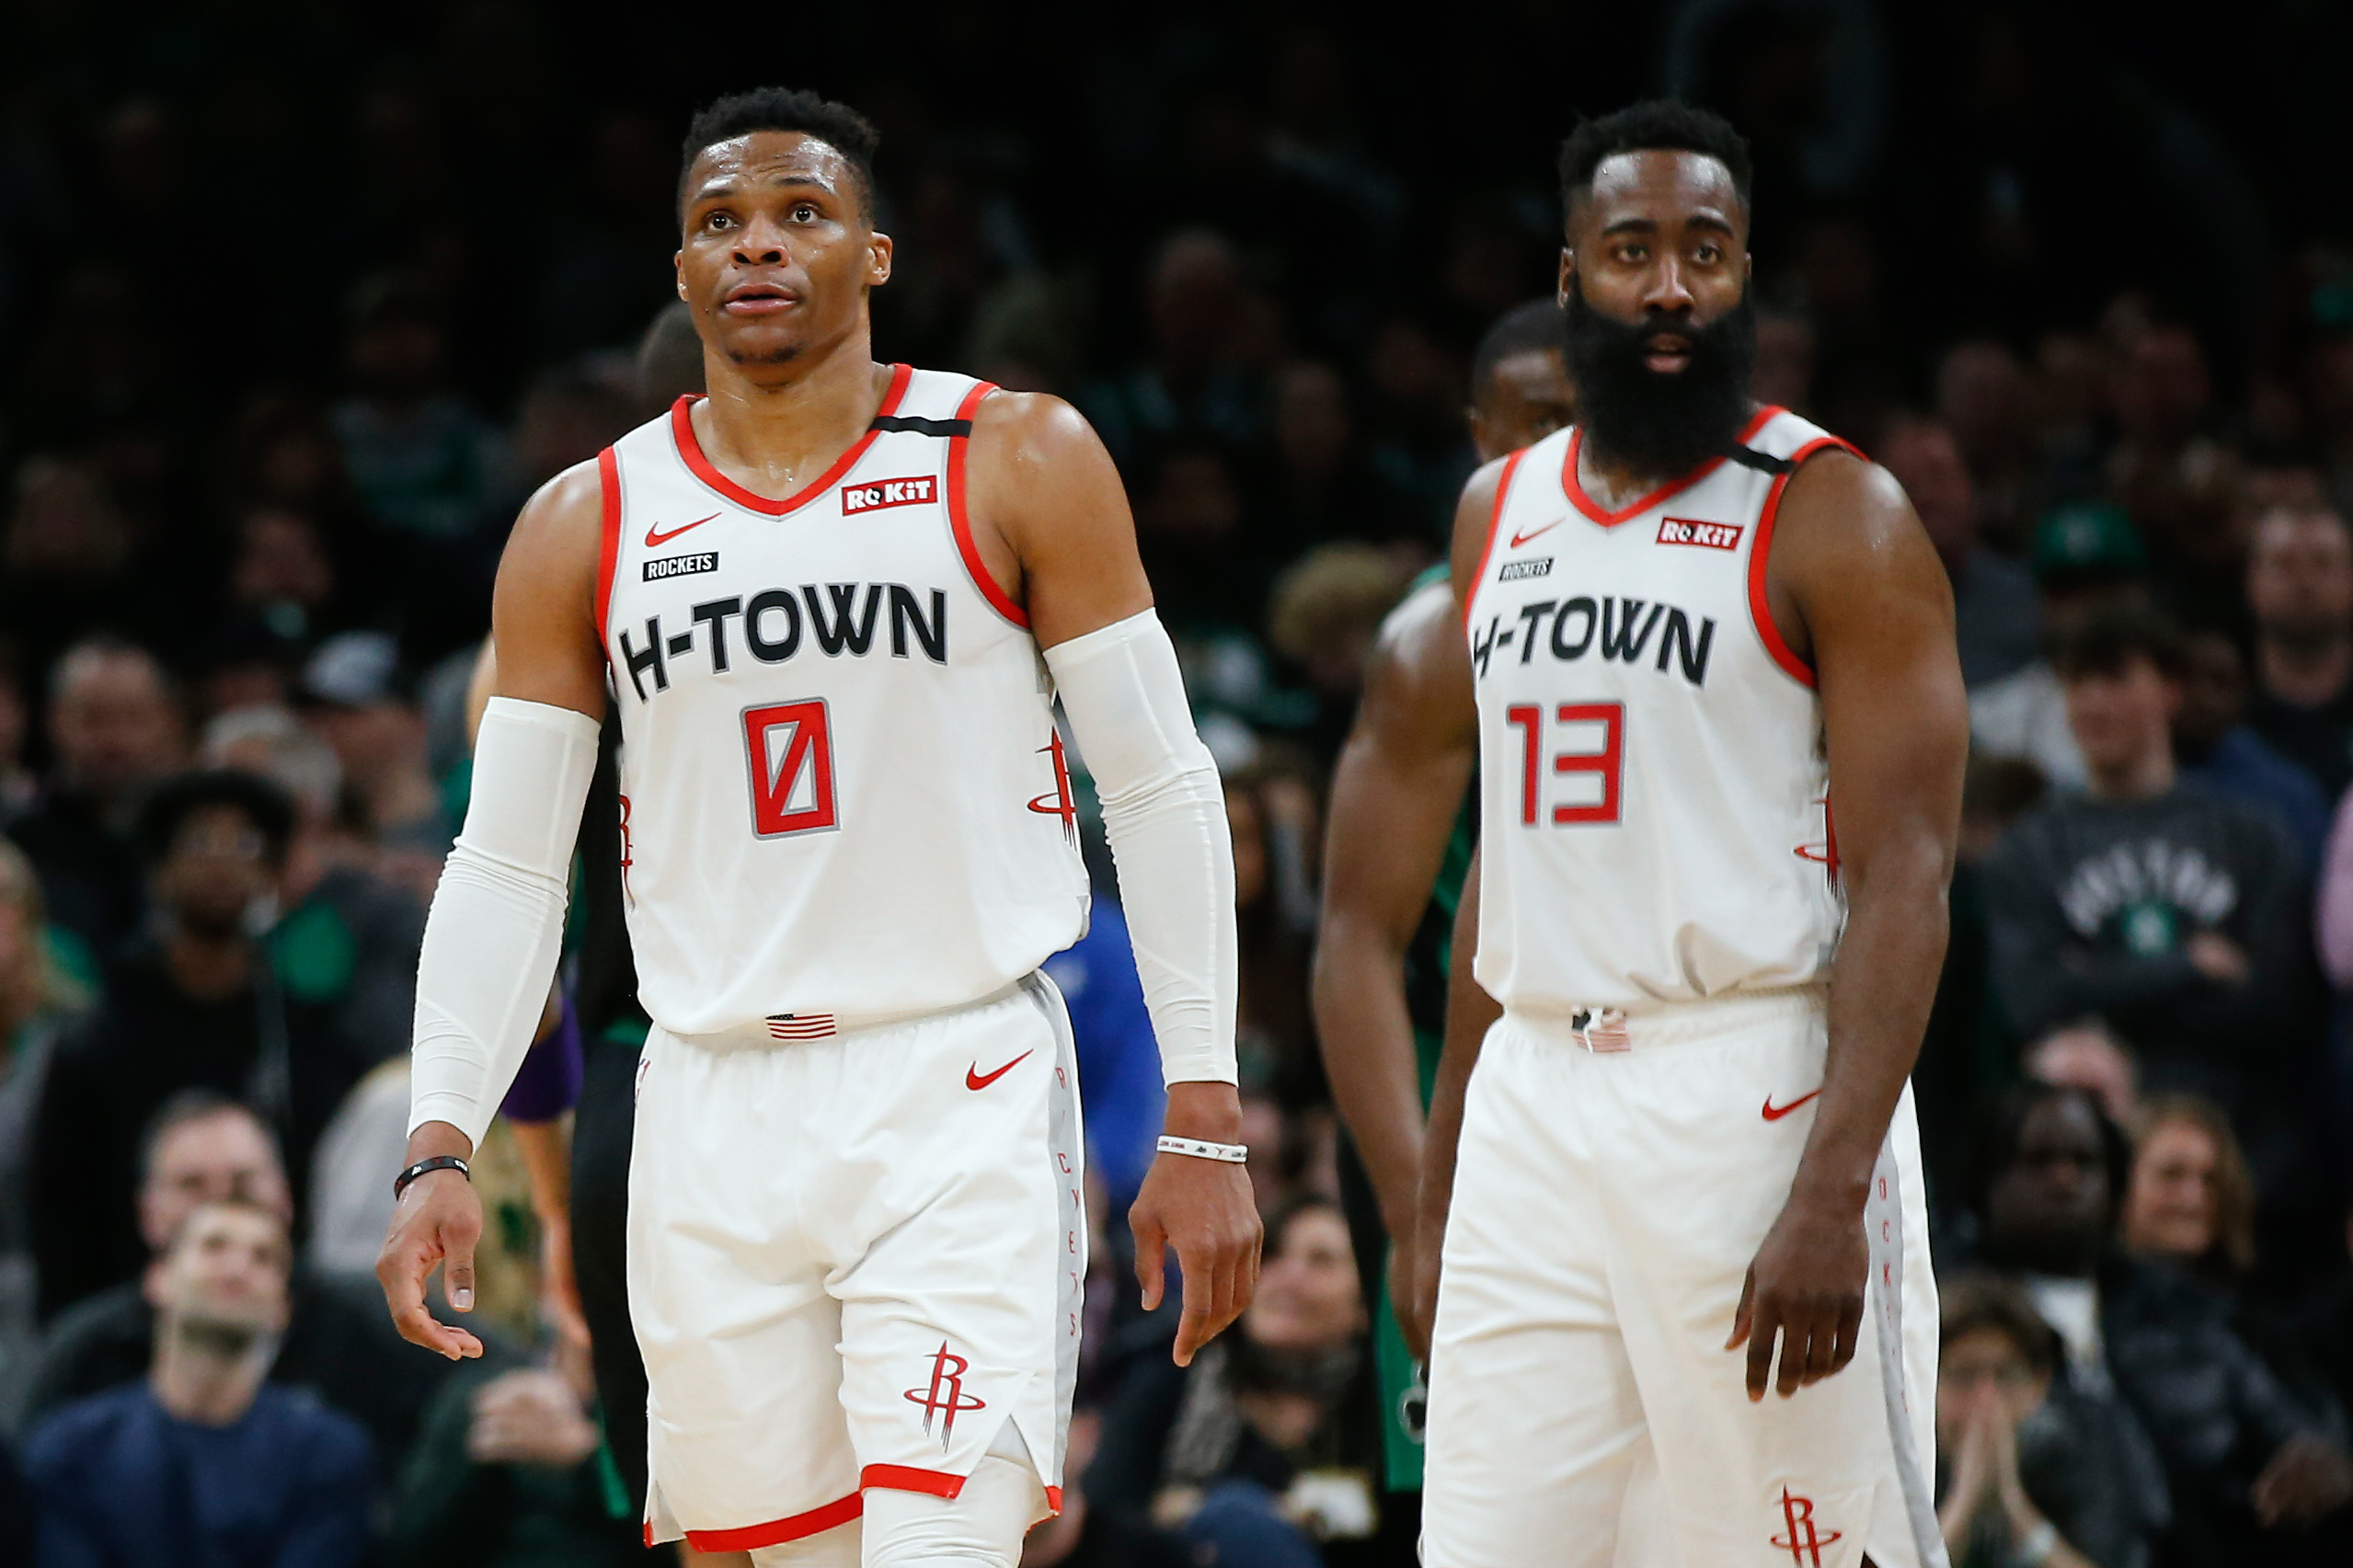 Houston Rockets guard Russell Westbrook and guard James Harden during the second half against the Boston Celtics at TD Garden.